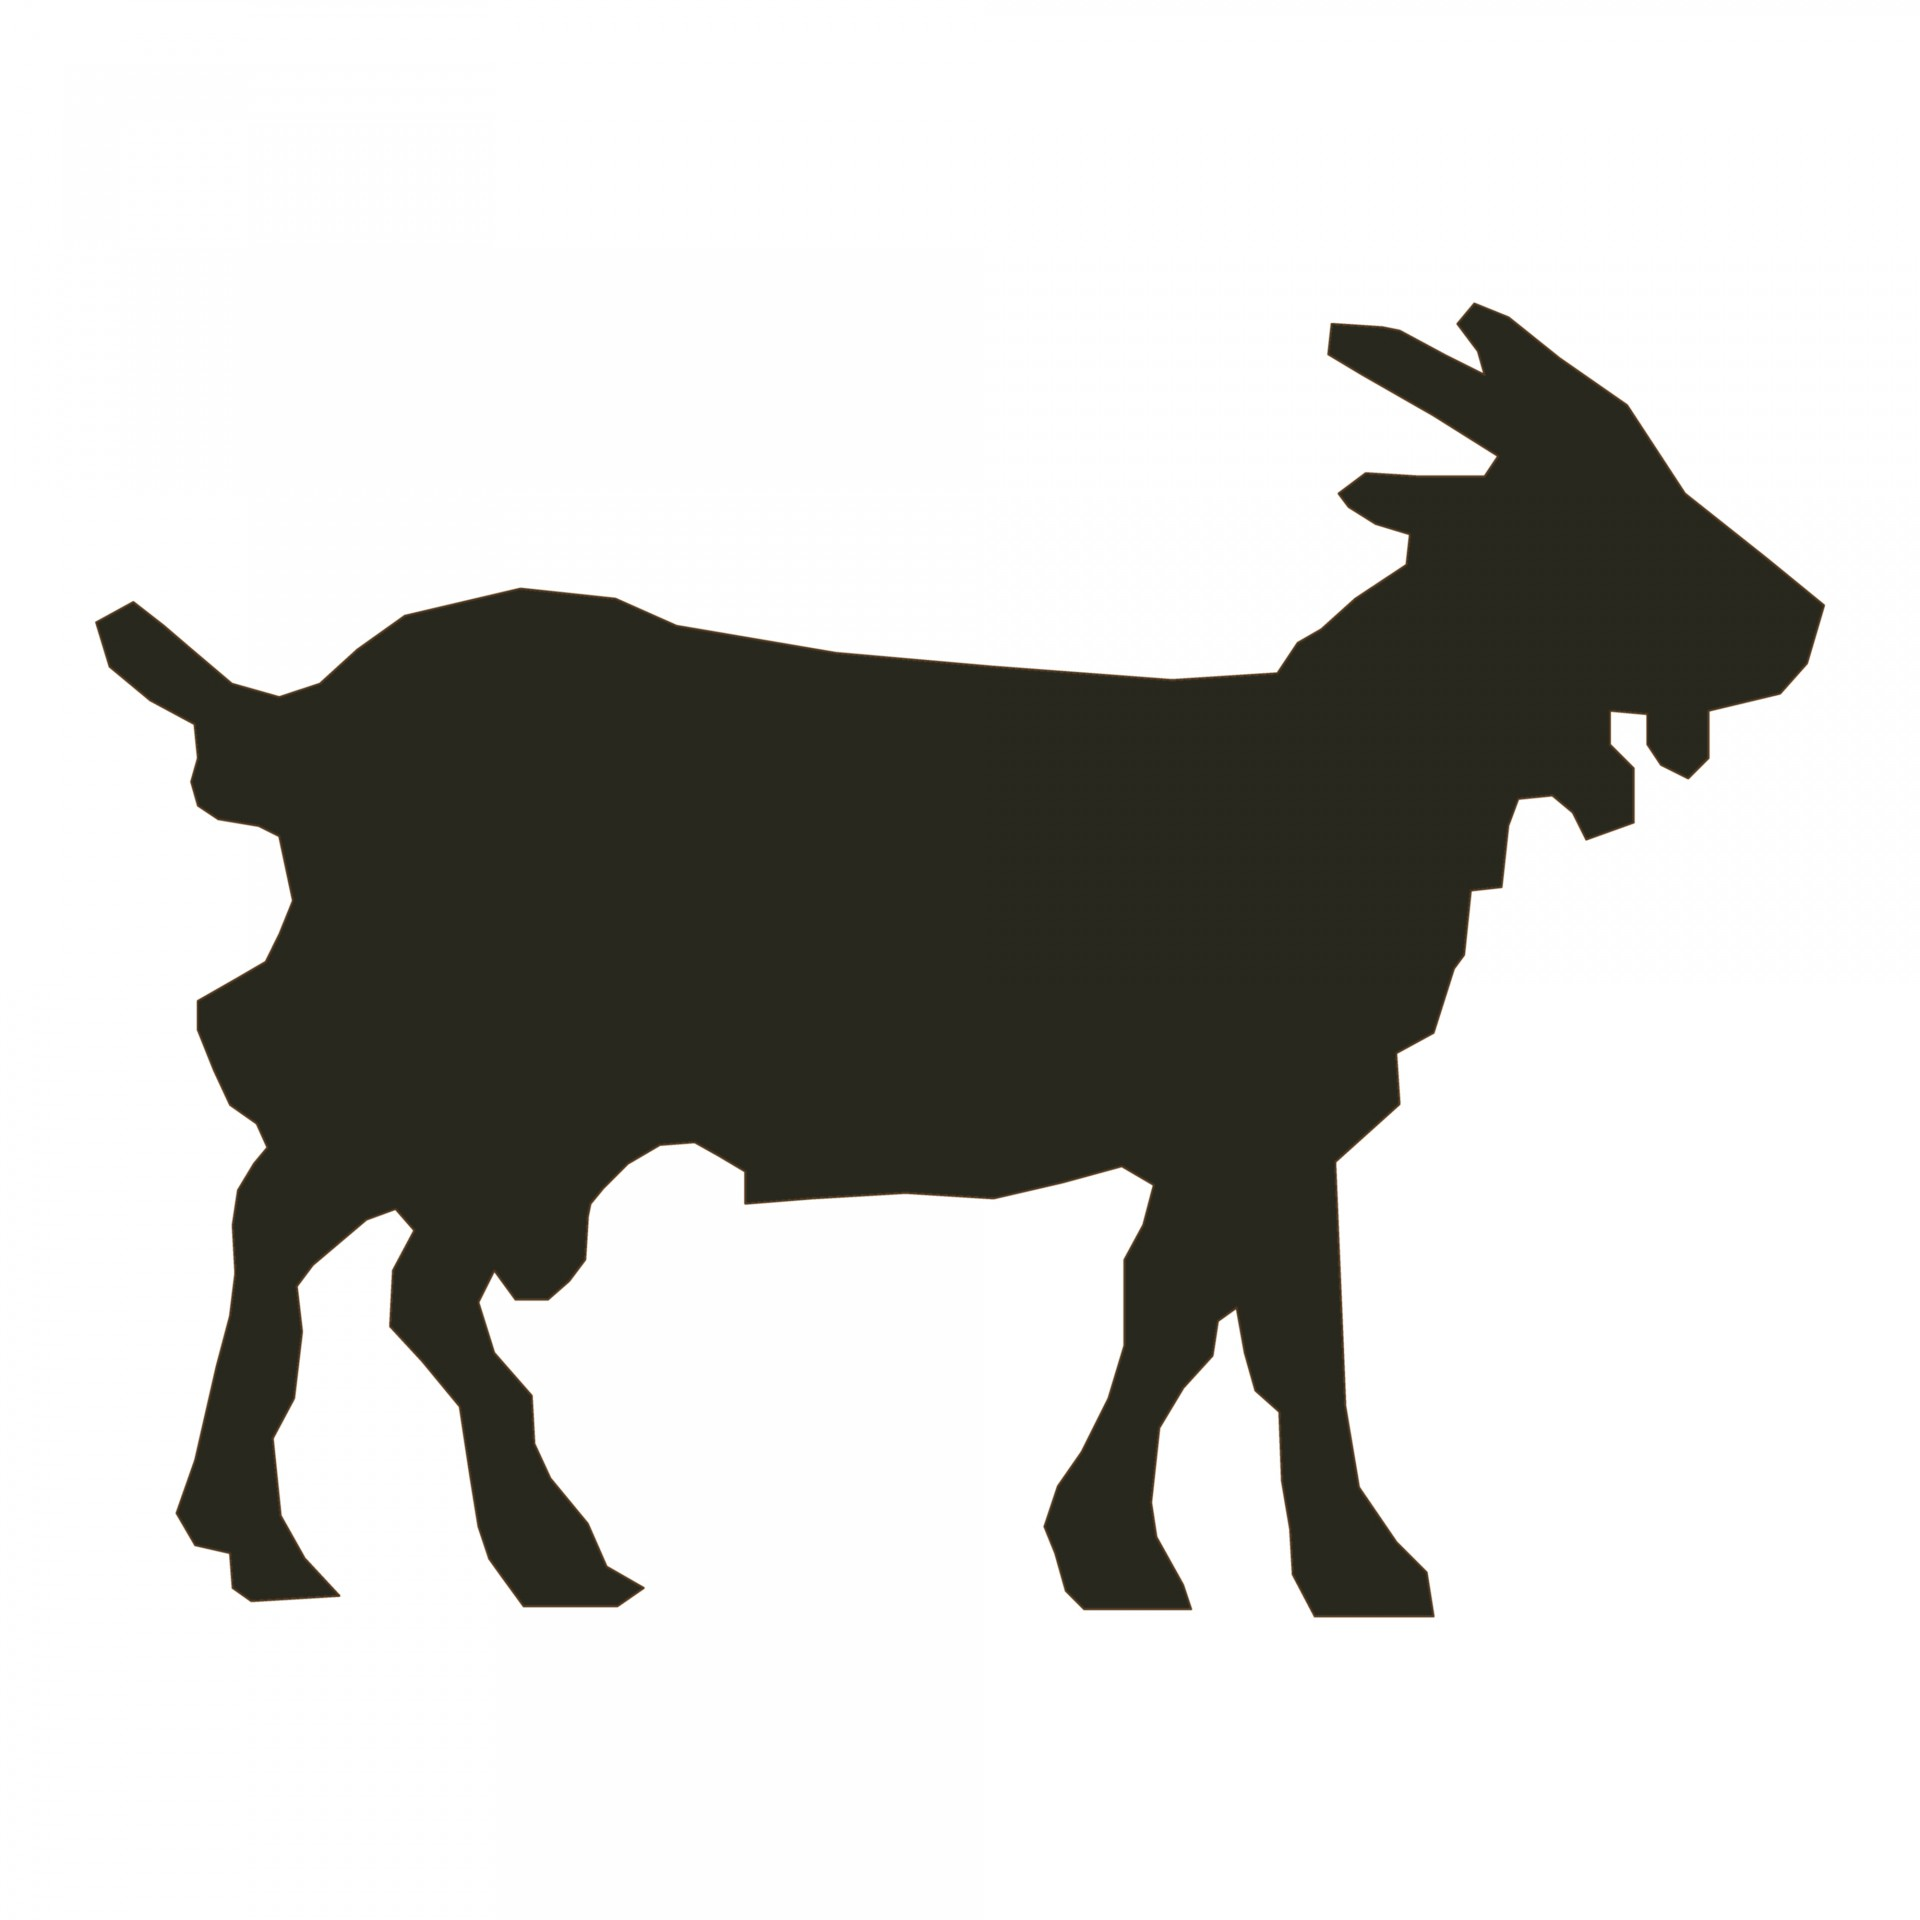 1920x1920 Goat Silhouette Free Stock Photo